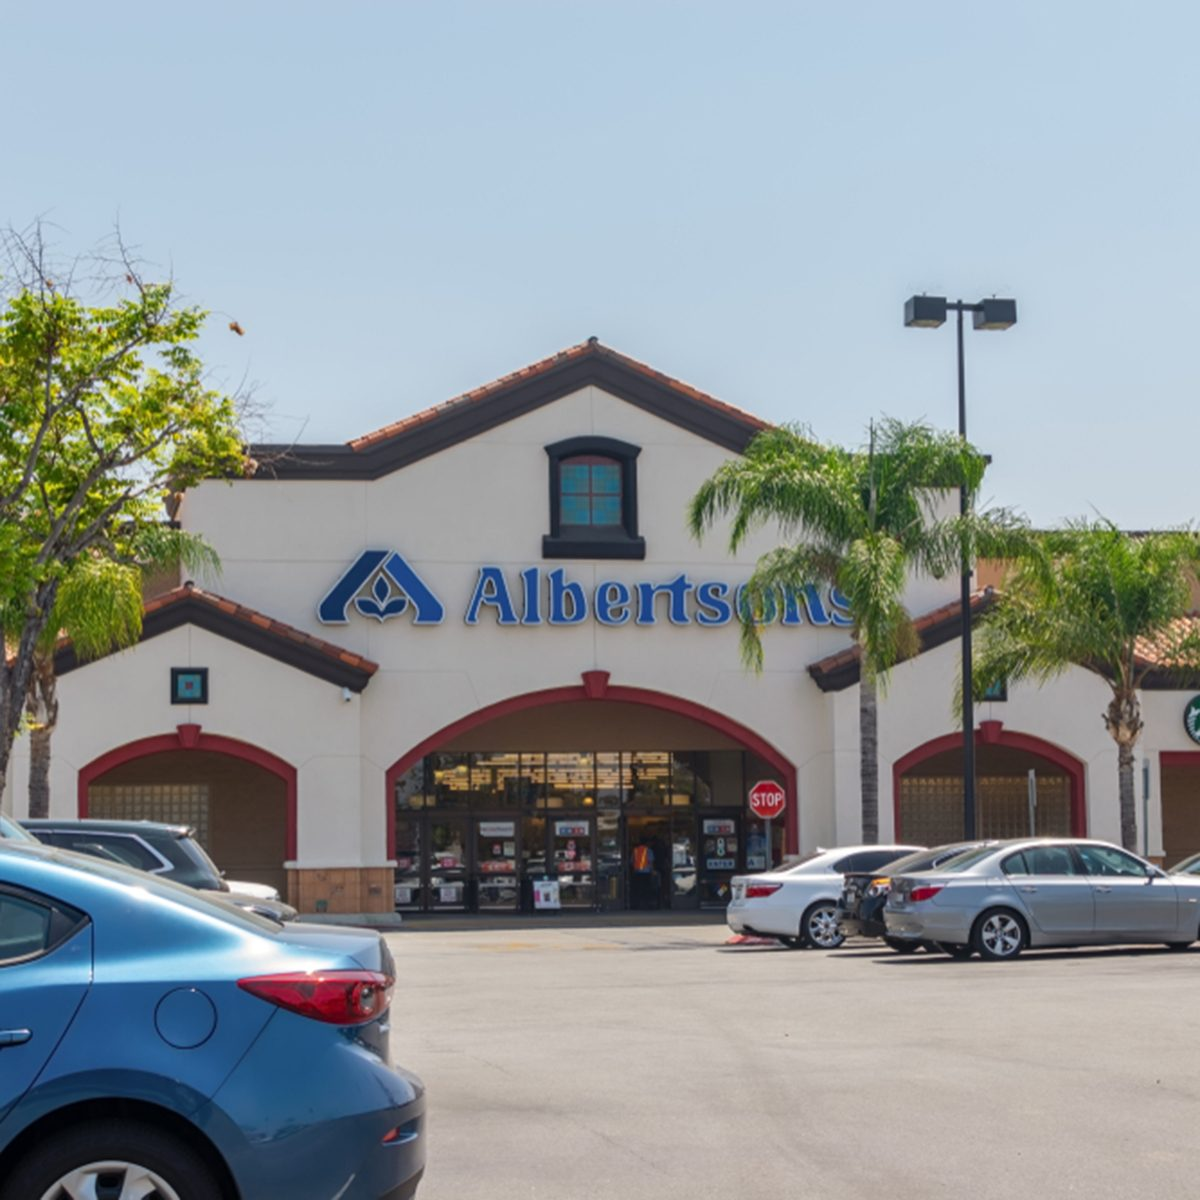 Albertsons grocery store entrance with a Starbucks and Savon Pharmacy inside the store.